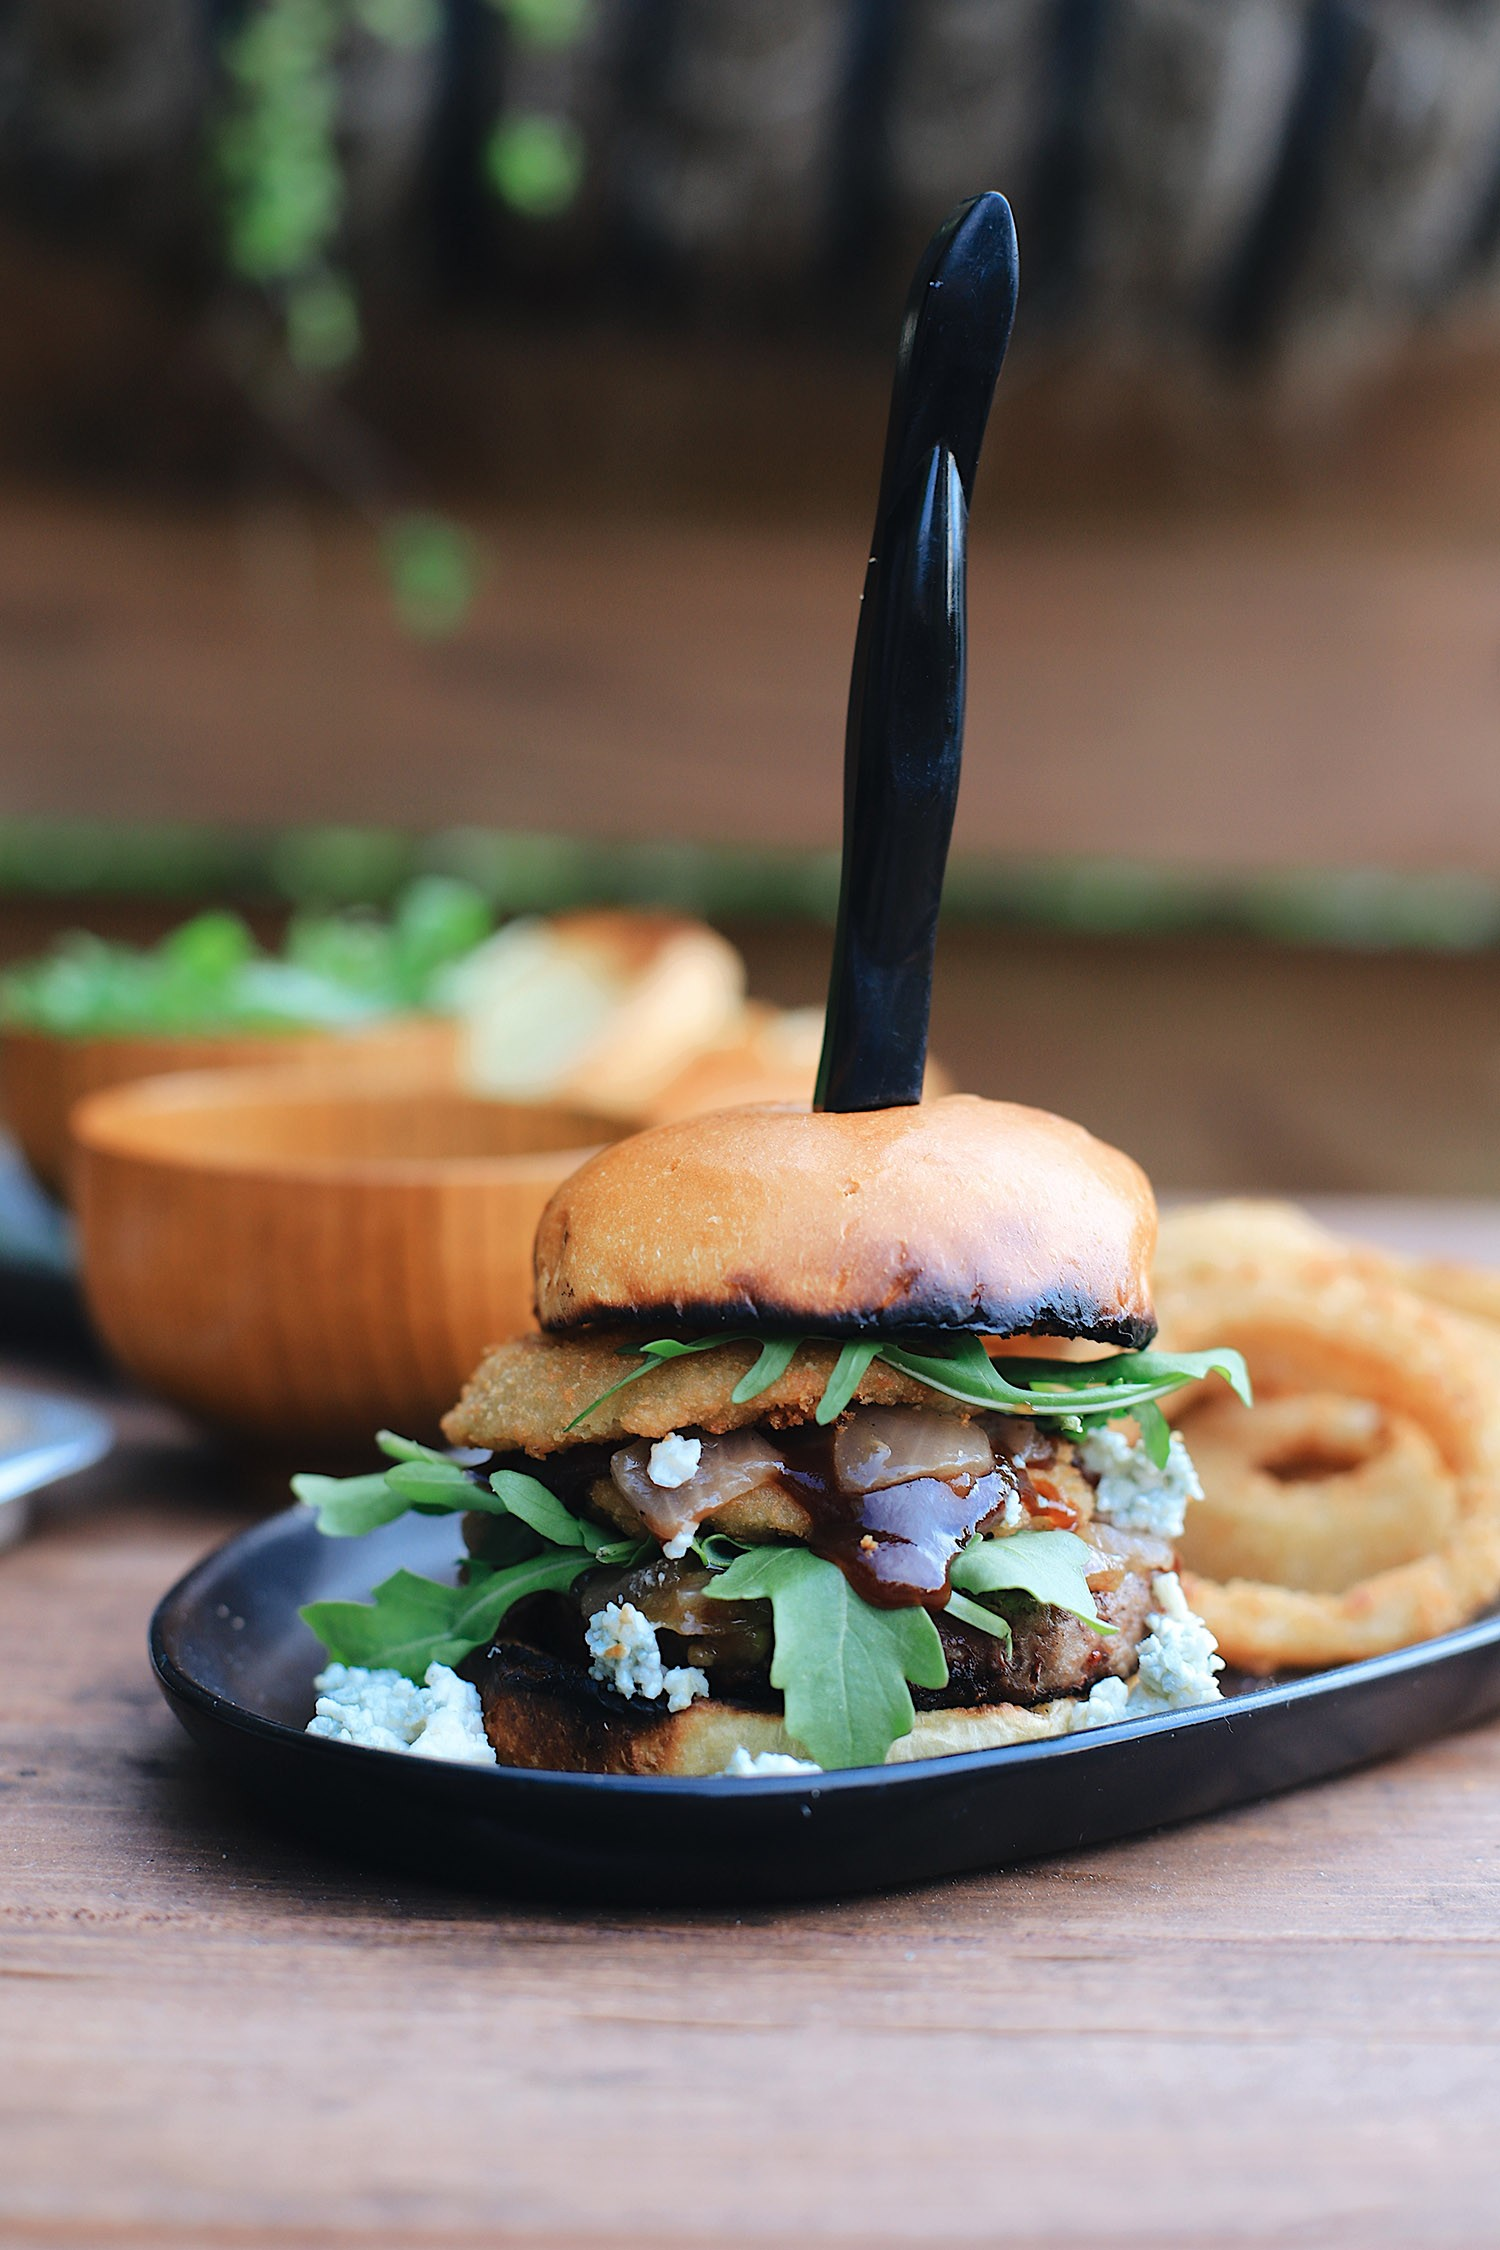 BBQ Bacon Blue Burger for a Tasty Backyard Barbecue. Not your average burger! Juicy beef burgers seasoned with a the perfect amount of spice, topped with smoked bacon jam, sweet bourbon onions, arugula, blue cheese, onion rings, BBQ sauce and a buttery grilled bun!   Grilling Season by popular Florida lifestyle blog, Fresh Mommy Blog: image of a BBQ burger on a black oval plate next to some onion rings.